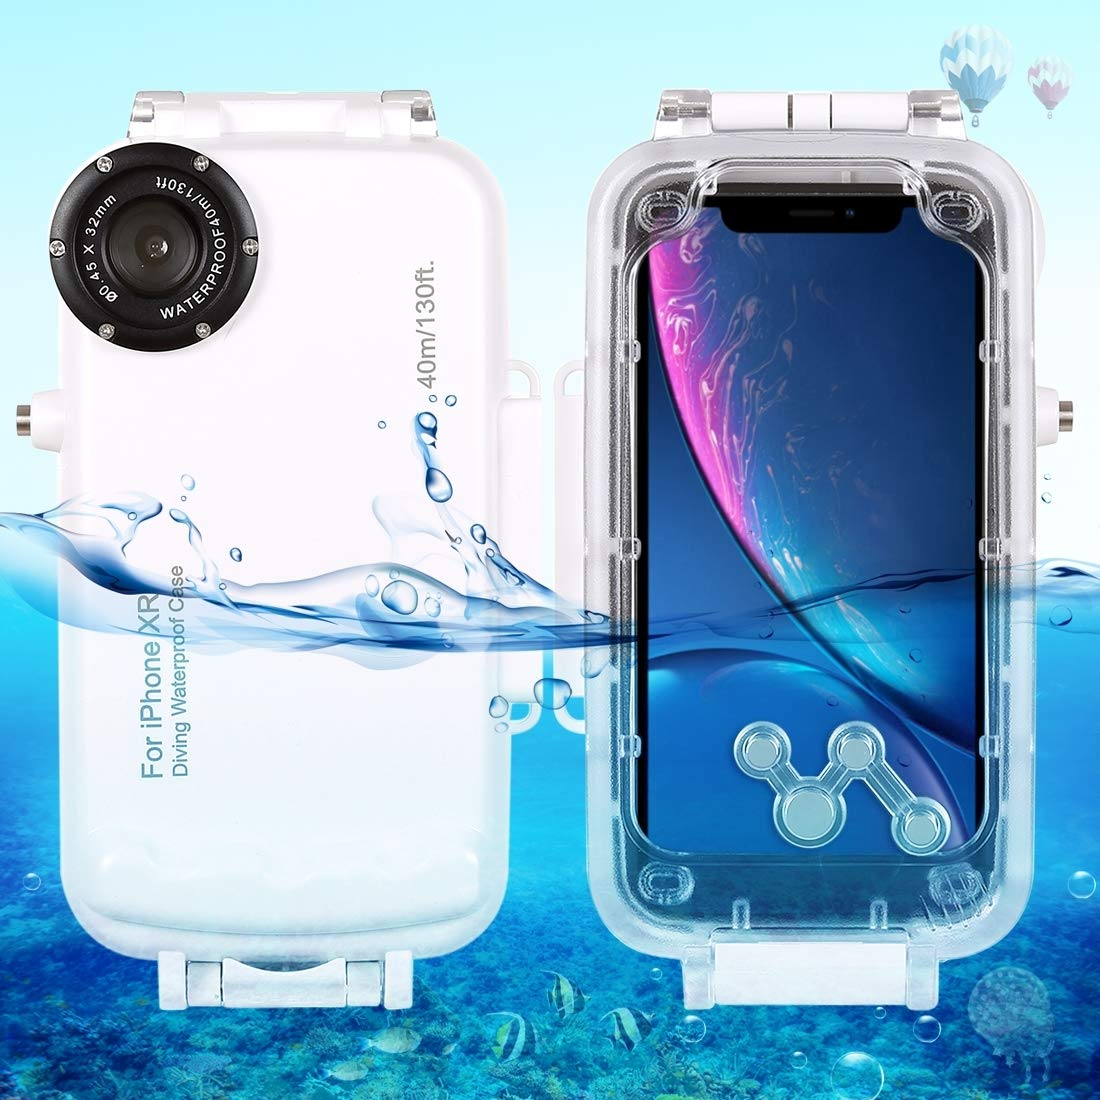 Naozbuyrig iPhone XR Case, HAWEEL 40m/130ft Waterproof Diving Housing Photo Video Taking Underwater Cover Case for iPhone XR (Color : White)